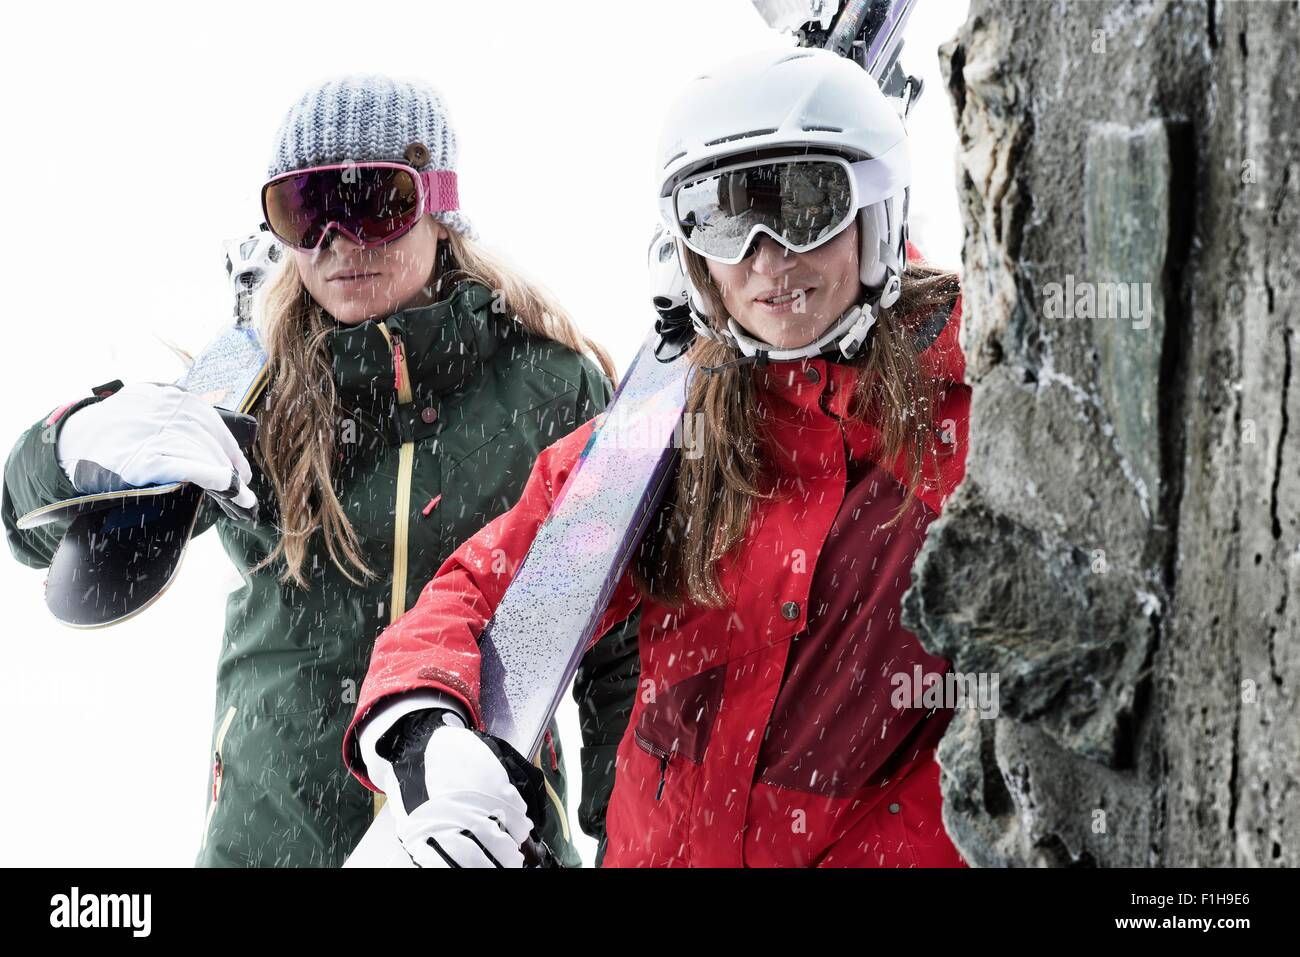 1ed60d87717 Women wearing ski goggles holding skis Stock Photo  87047134 - Alamy